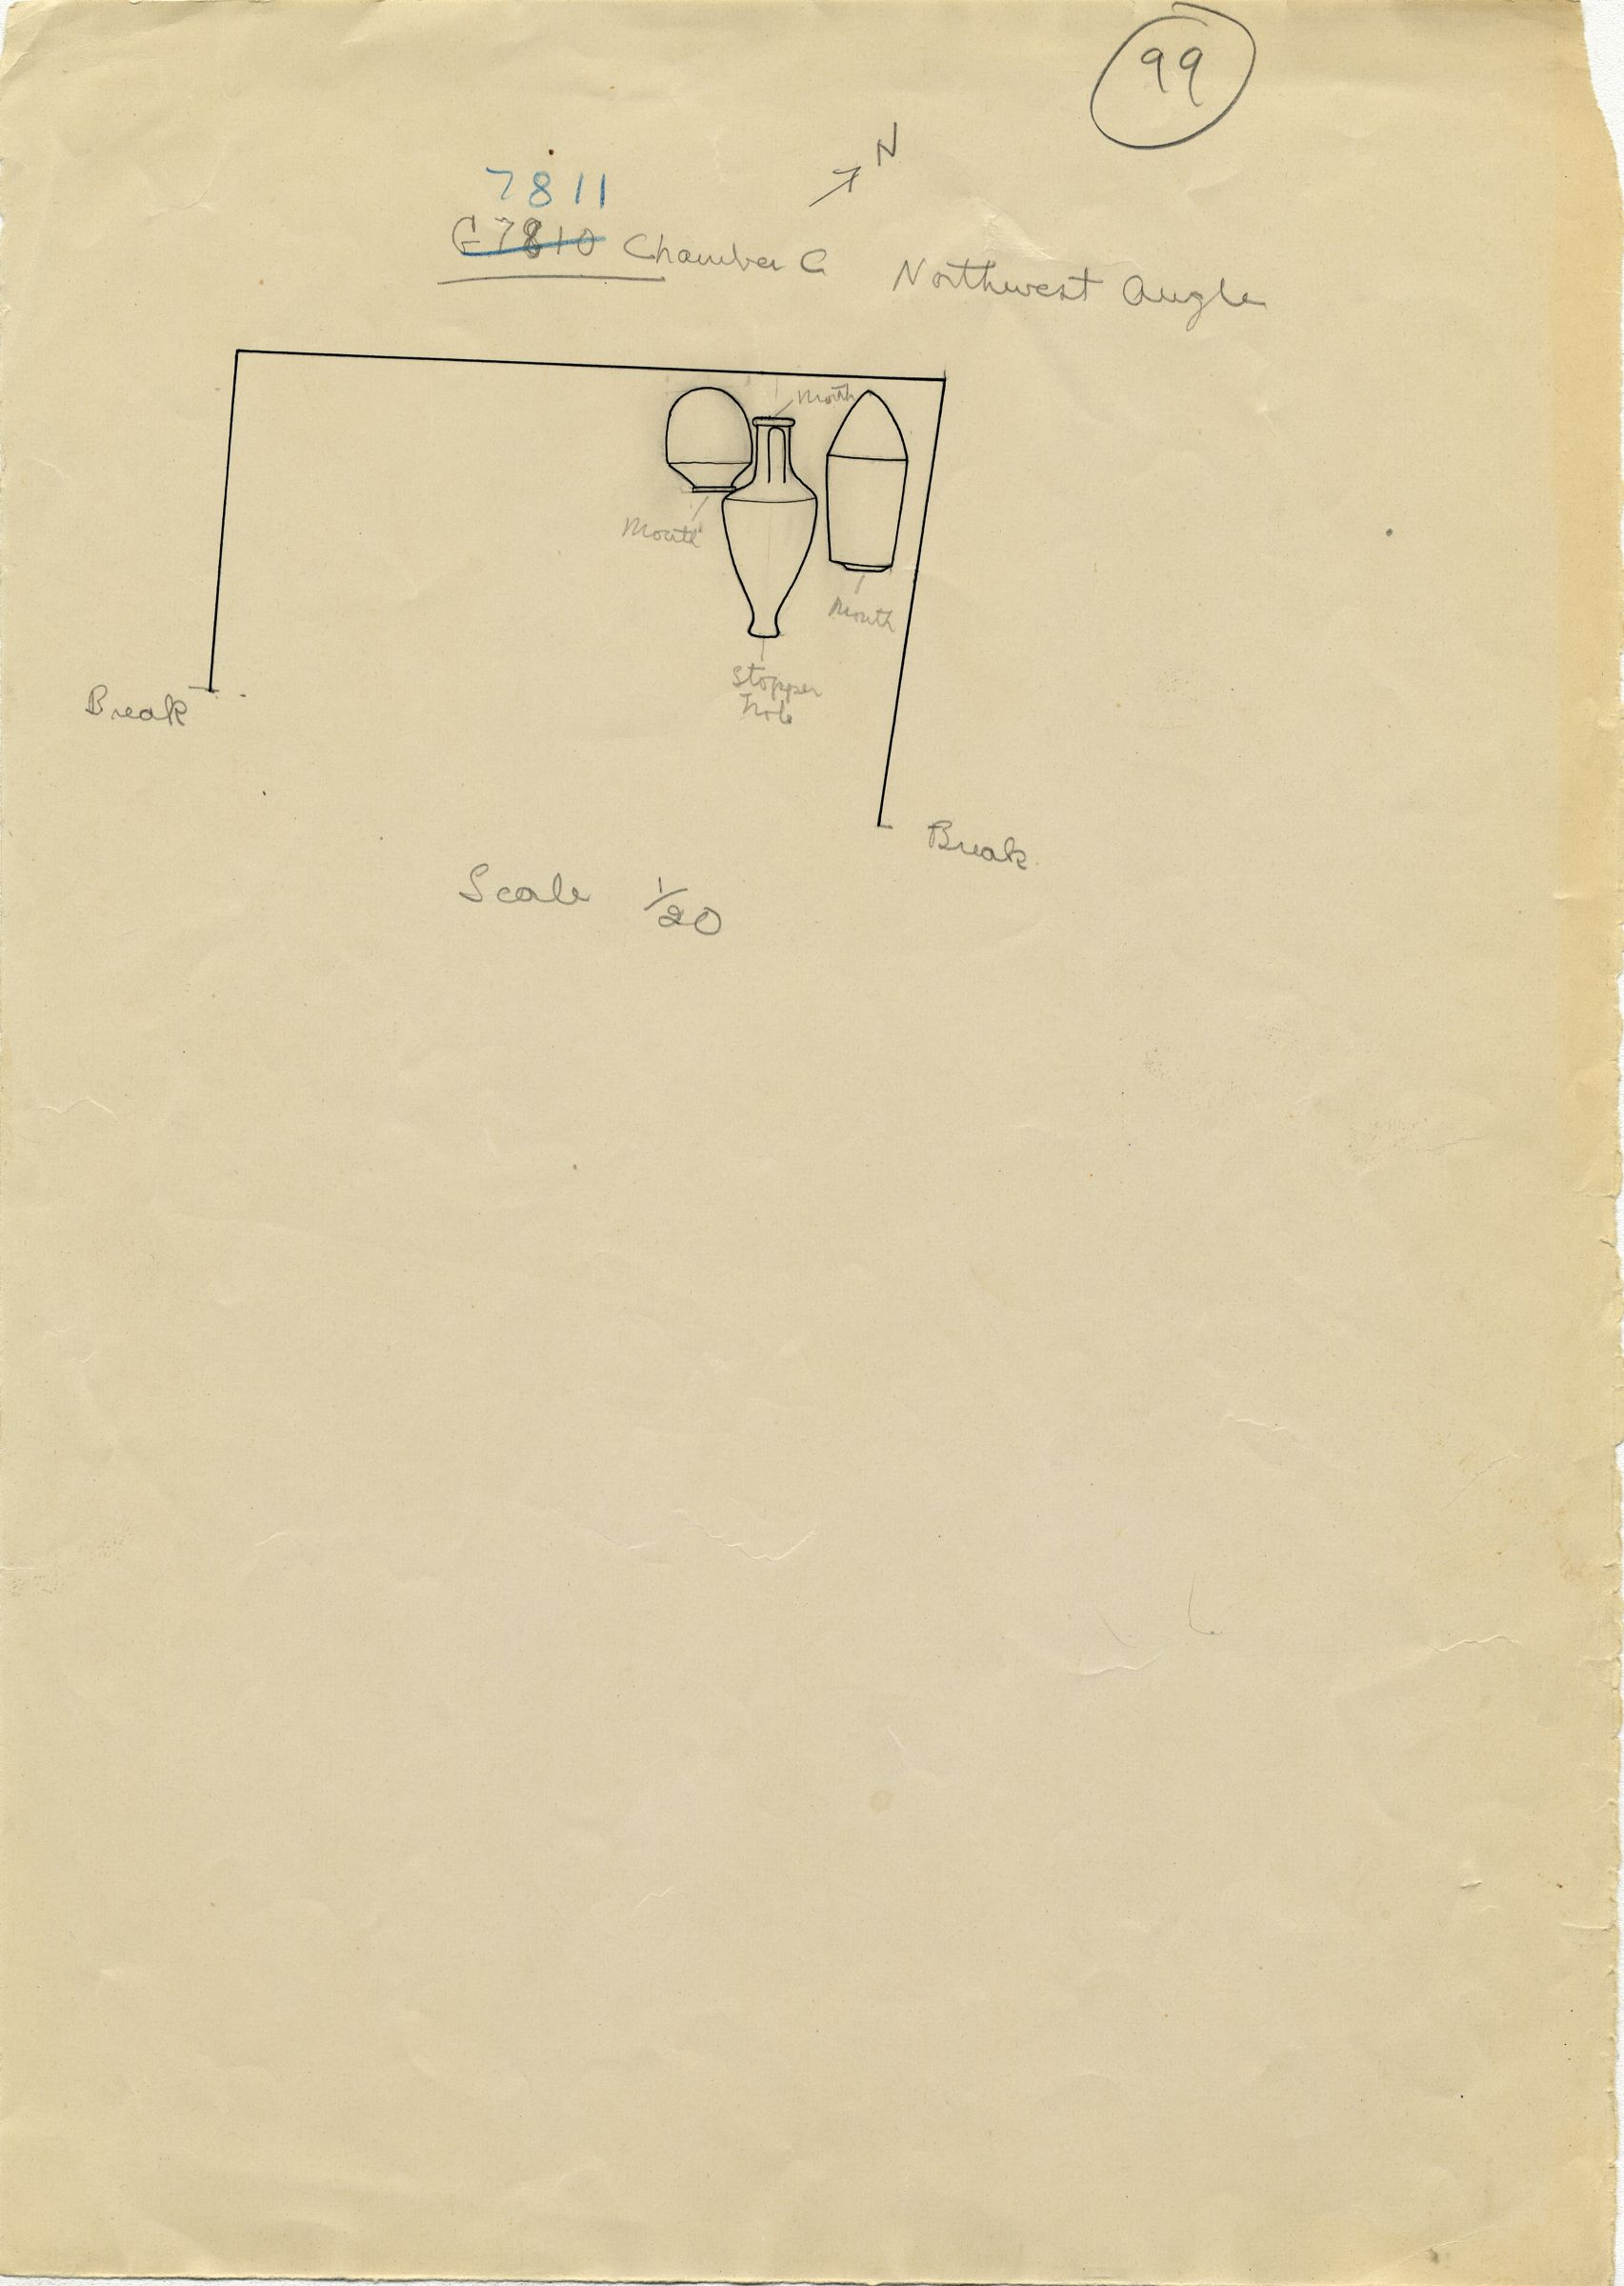 Maps and plans: G 7811, Chamber C, objects in northwest corner